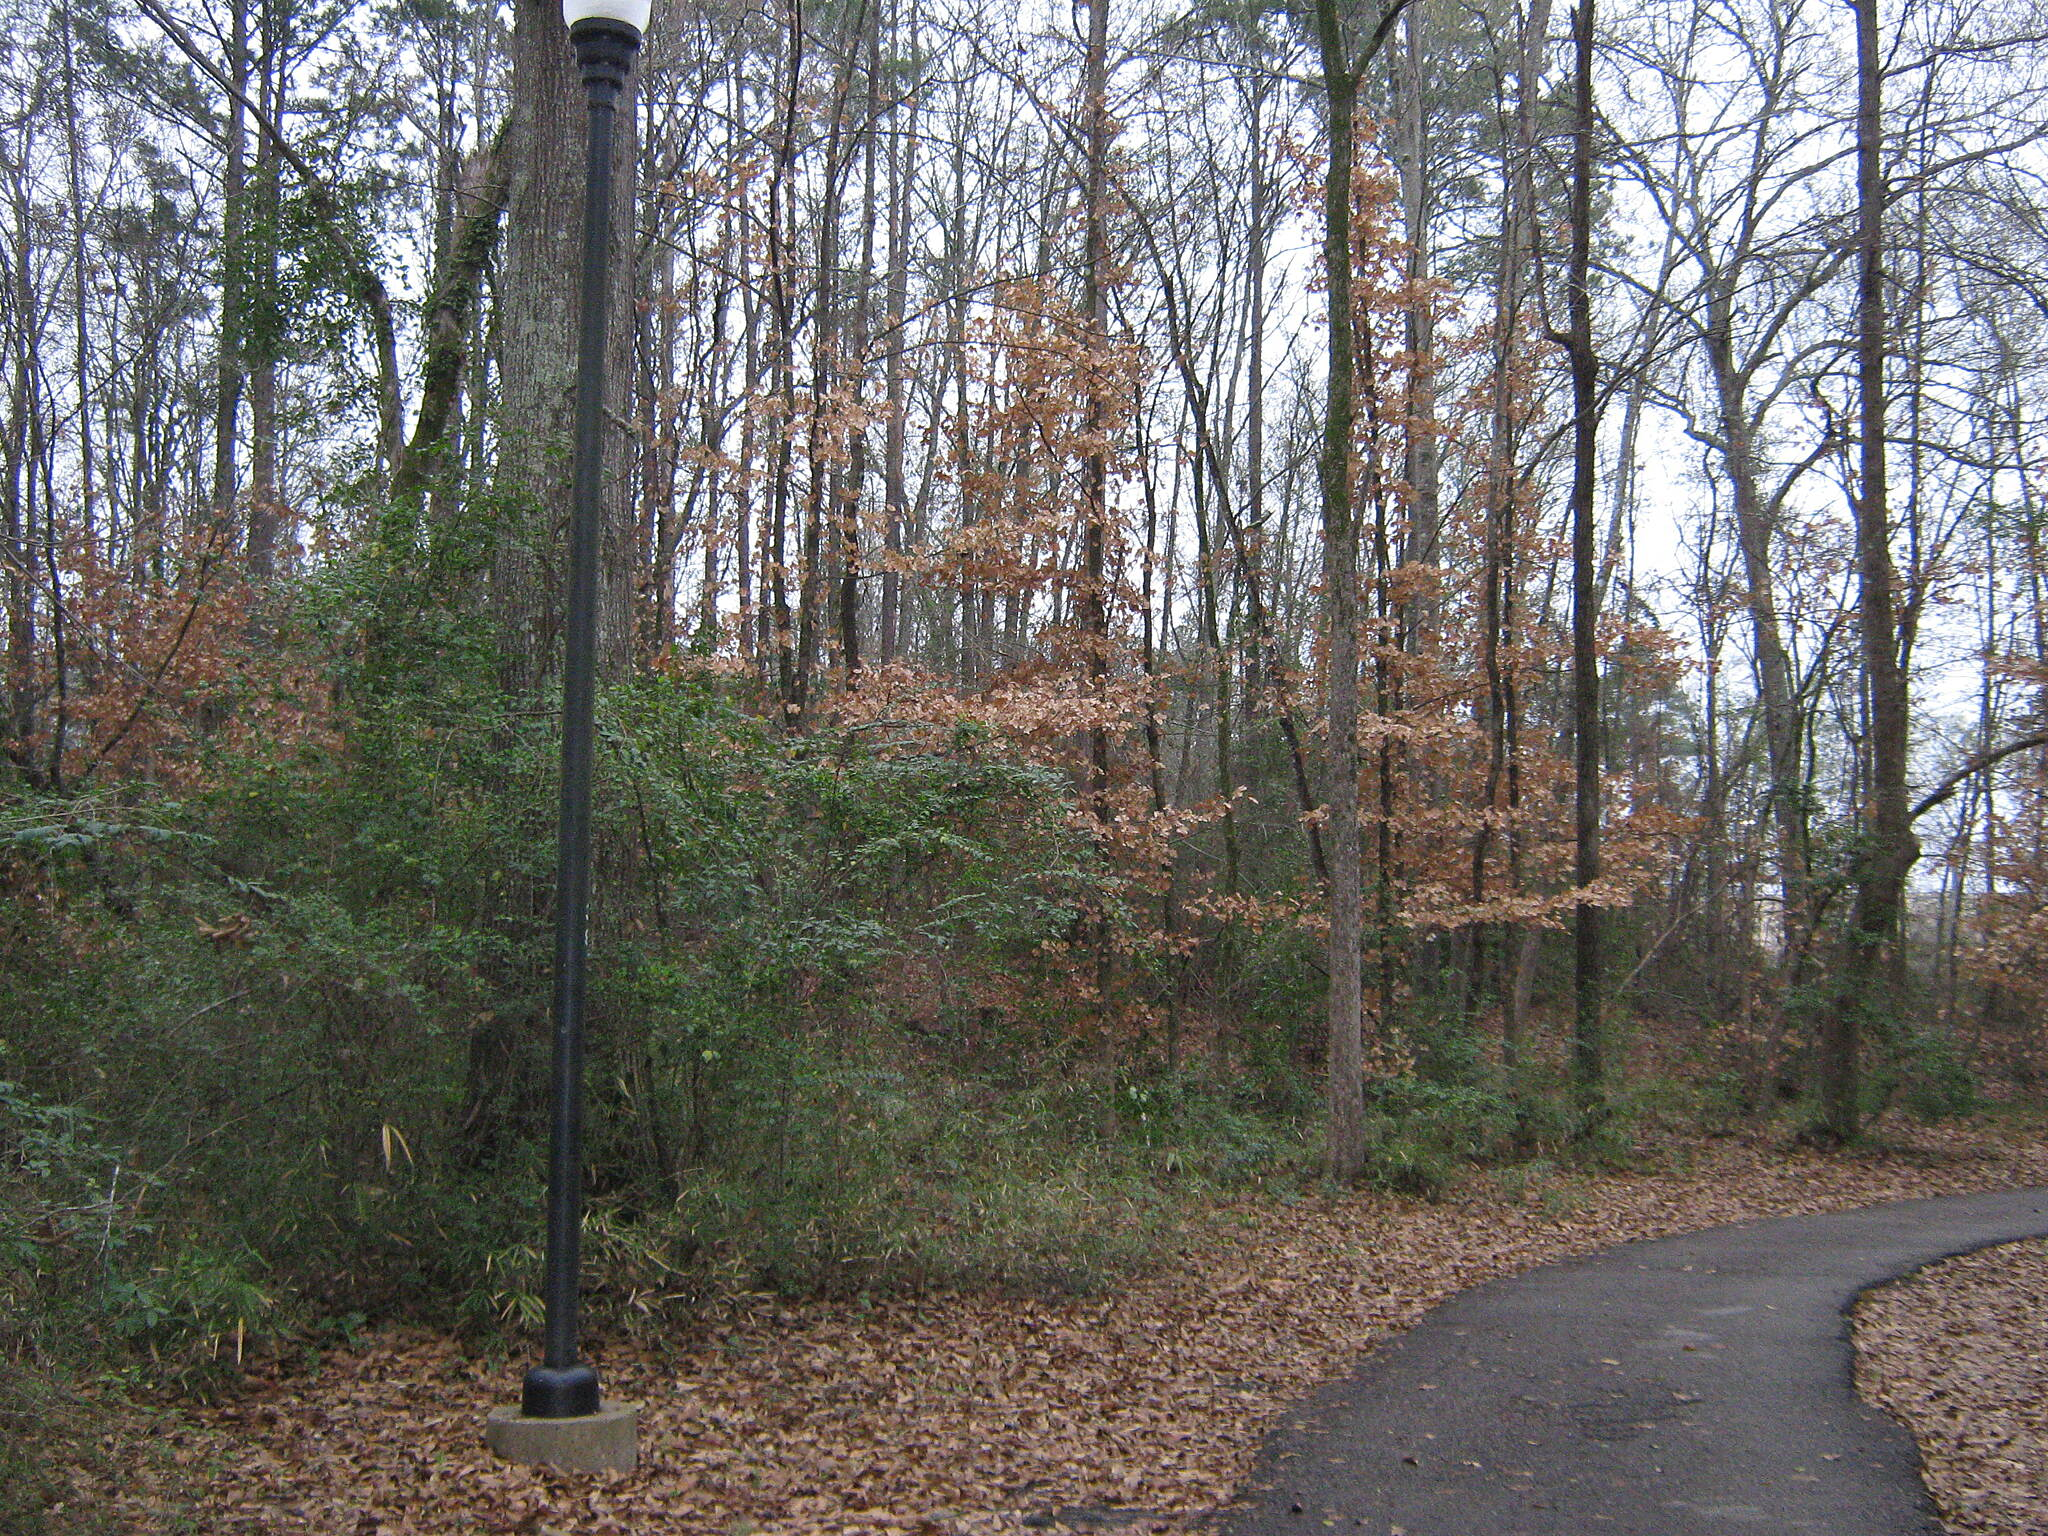 Azalea Trail Azalea Trail - Lufkin Pathway toward the end of the trail.